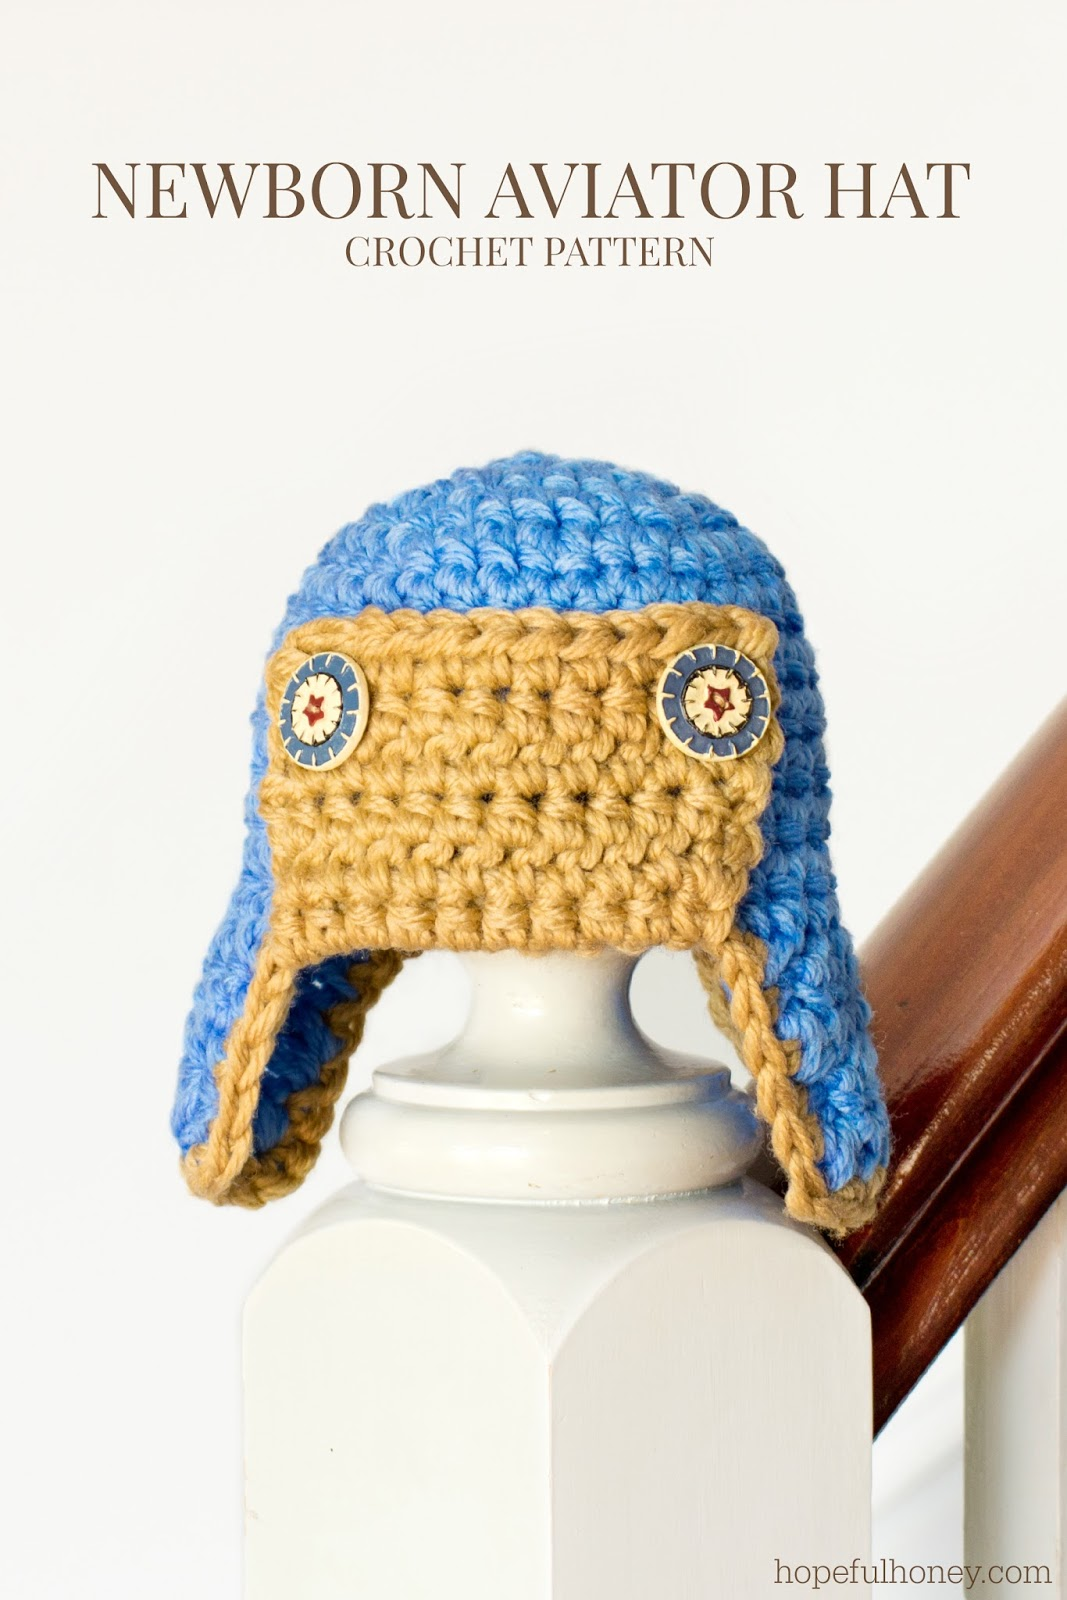 Crochet Newborn Aviator Hat Pattern : Hopeful Honey Craft, Crochet, Create: Newborn Aviator ...